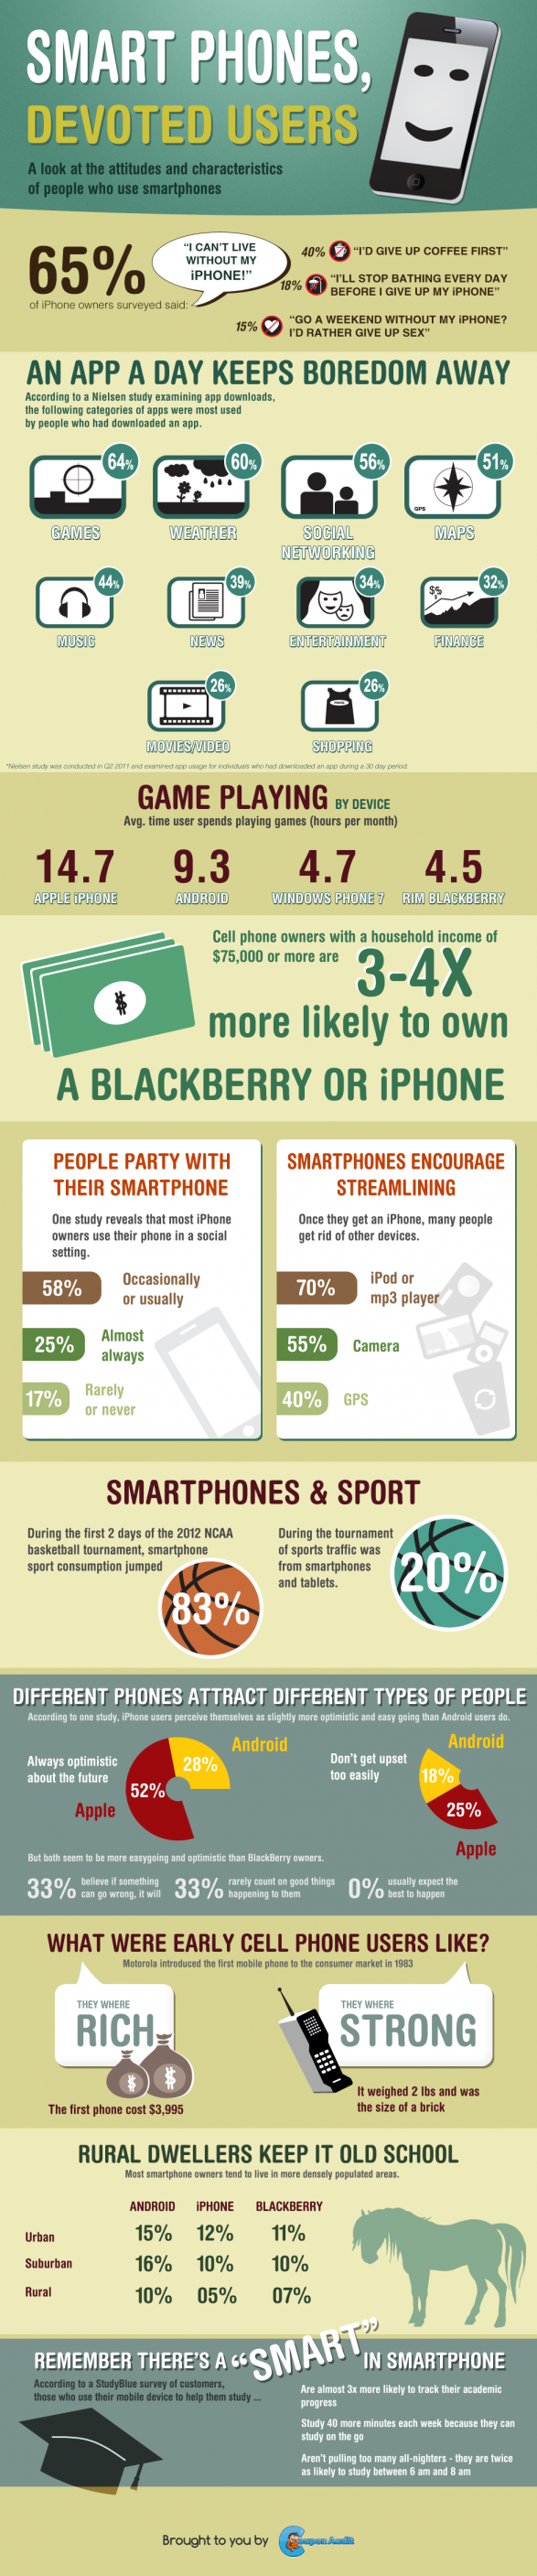 SmartPhones, Devoted Users [Infographic]